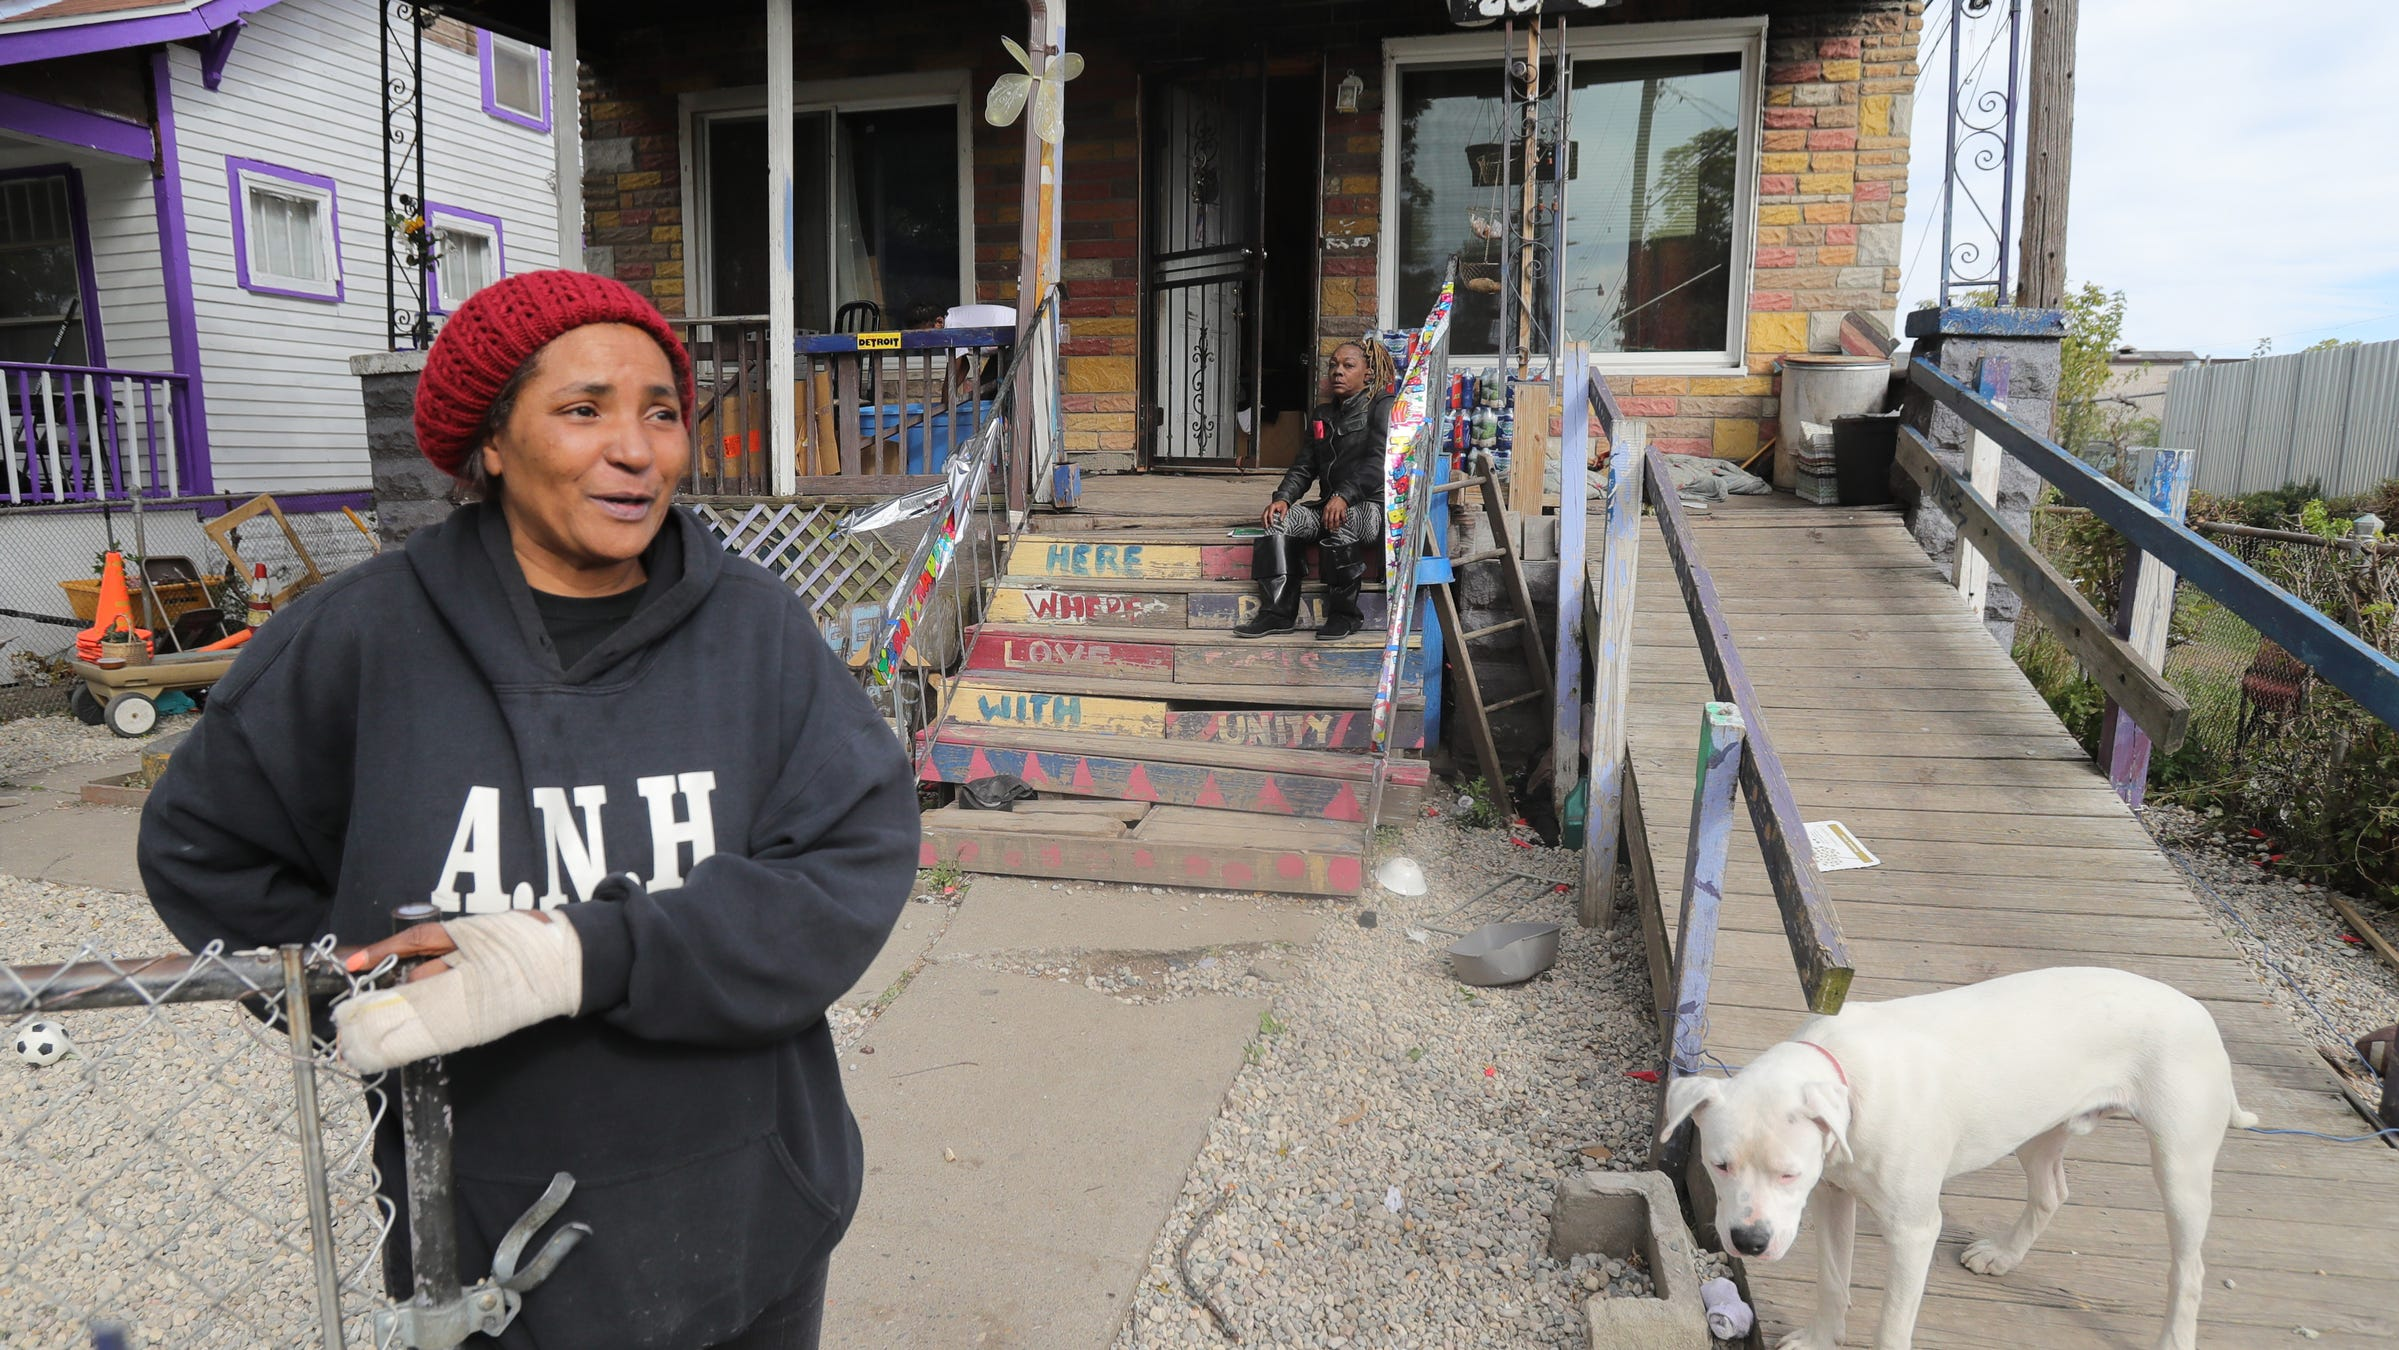 Detroit demolitions never stopped as promised